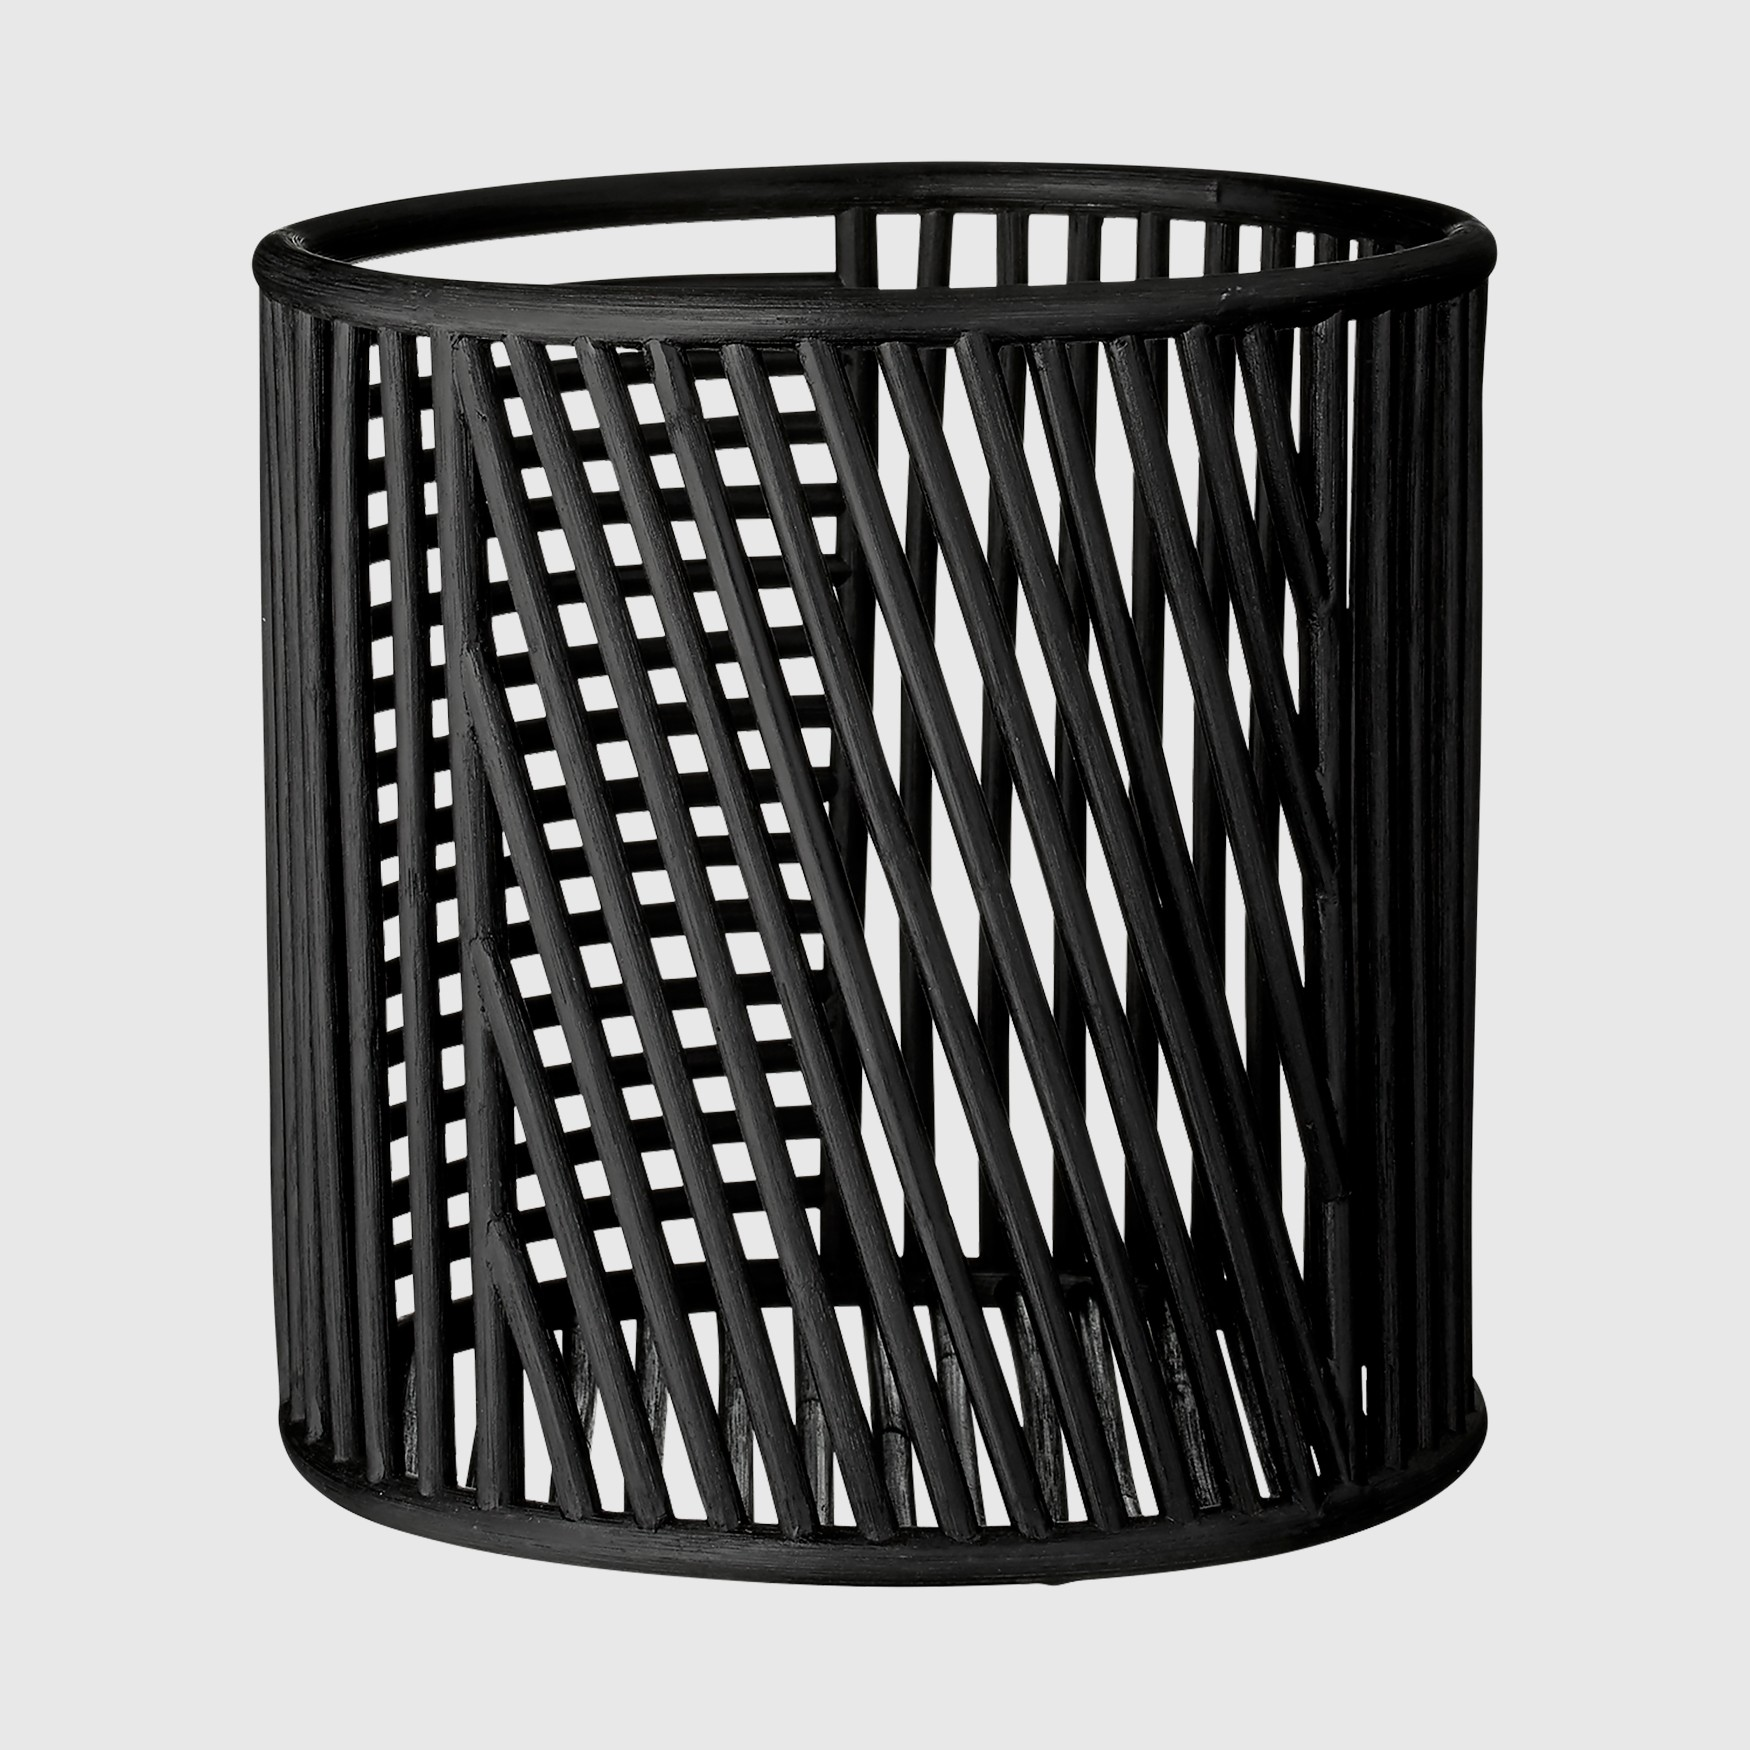 Aytm_Rattan_Basket_black_large3